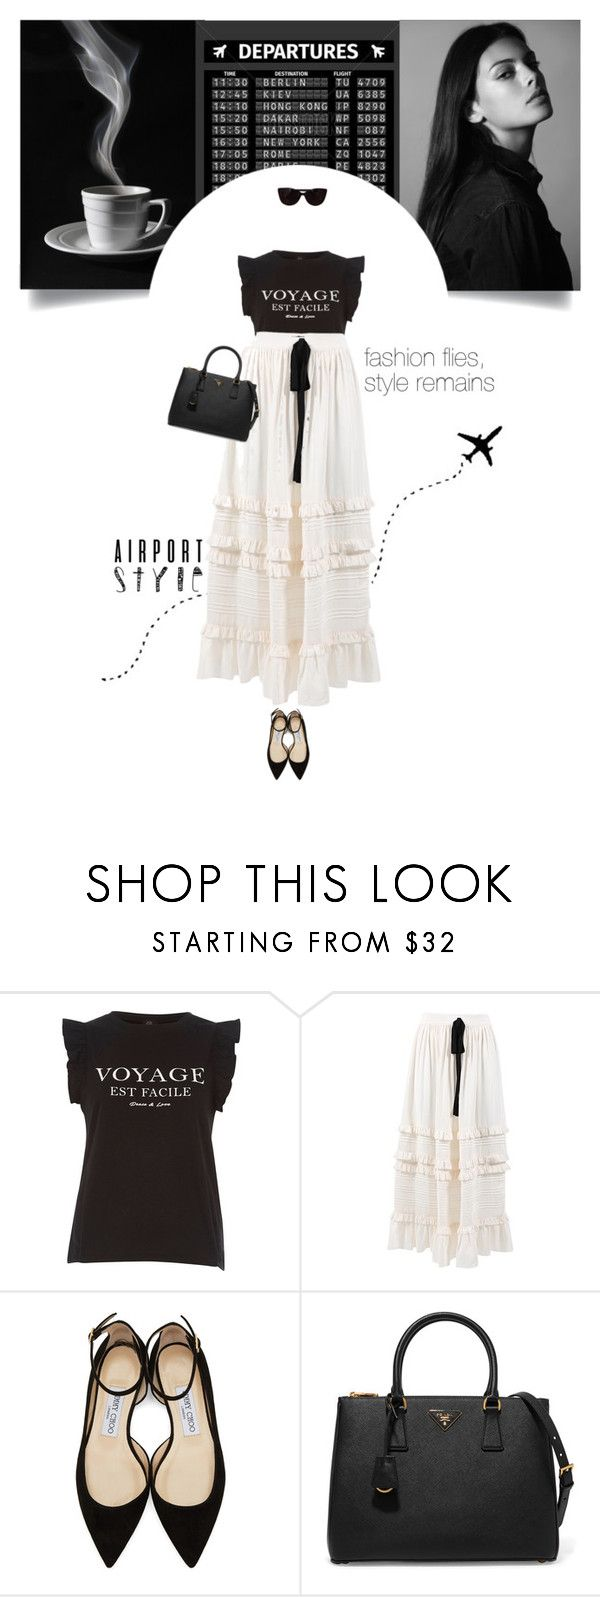 """""""Untitled #297"""" by soledestate ❤ liked on Polyvore featuring River Island, Ulla Johnson, Jimmy Choo, Prada, Tiffany & Co. and airportstyle"""